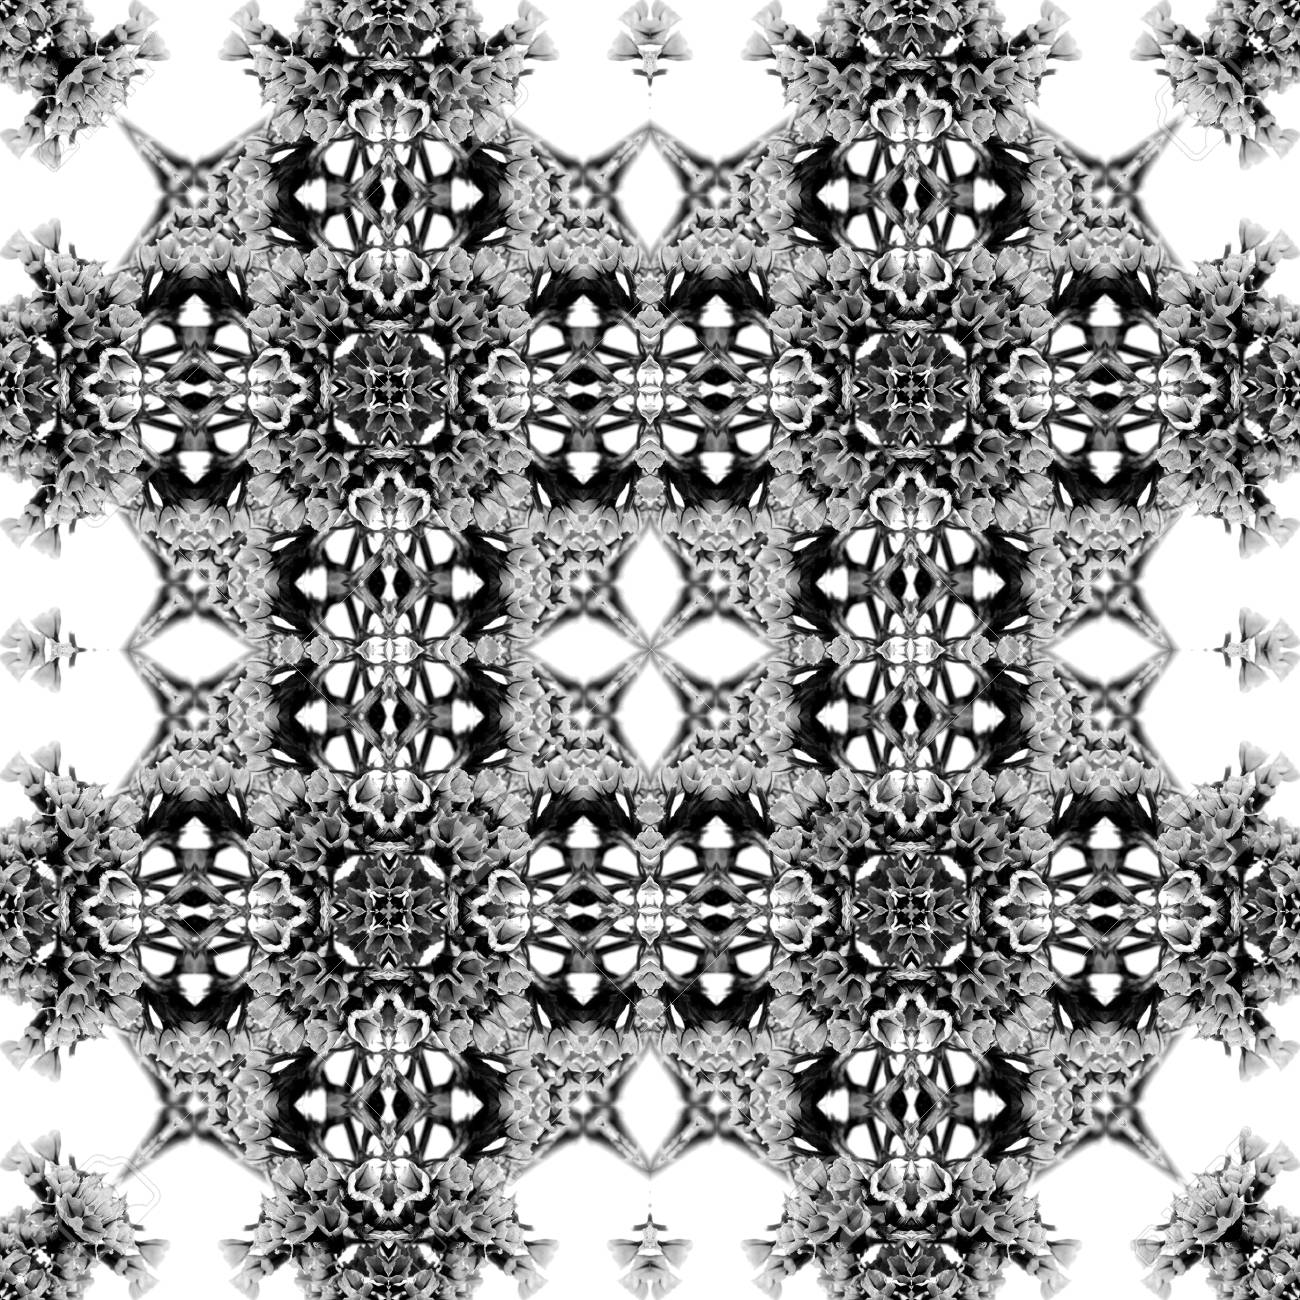 Abstract seamless pattern. Black and White background. Kaleidoscope from flowers. Hydraulic tile design. - 104074802